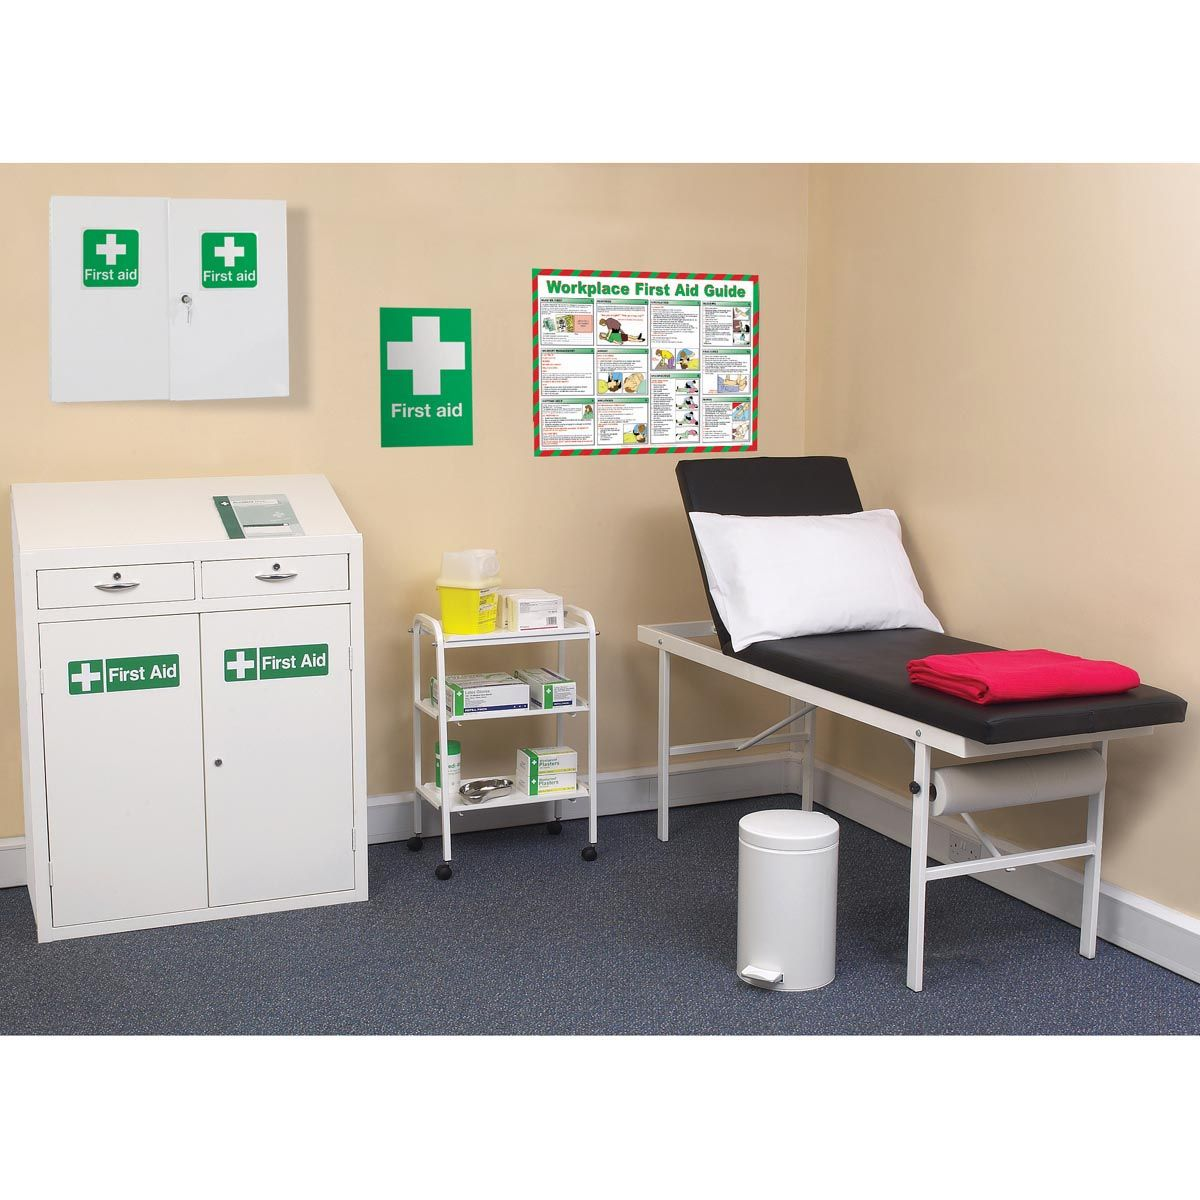 First aid room requirements singapore zoo